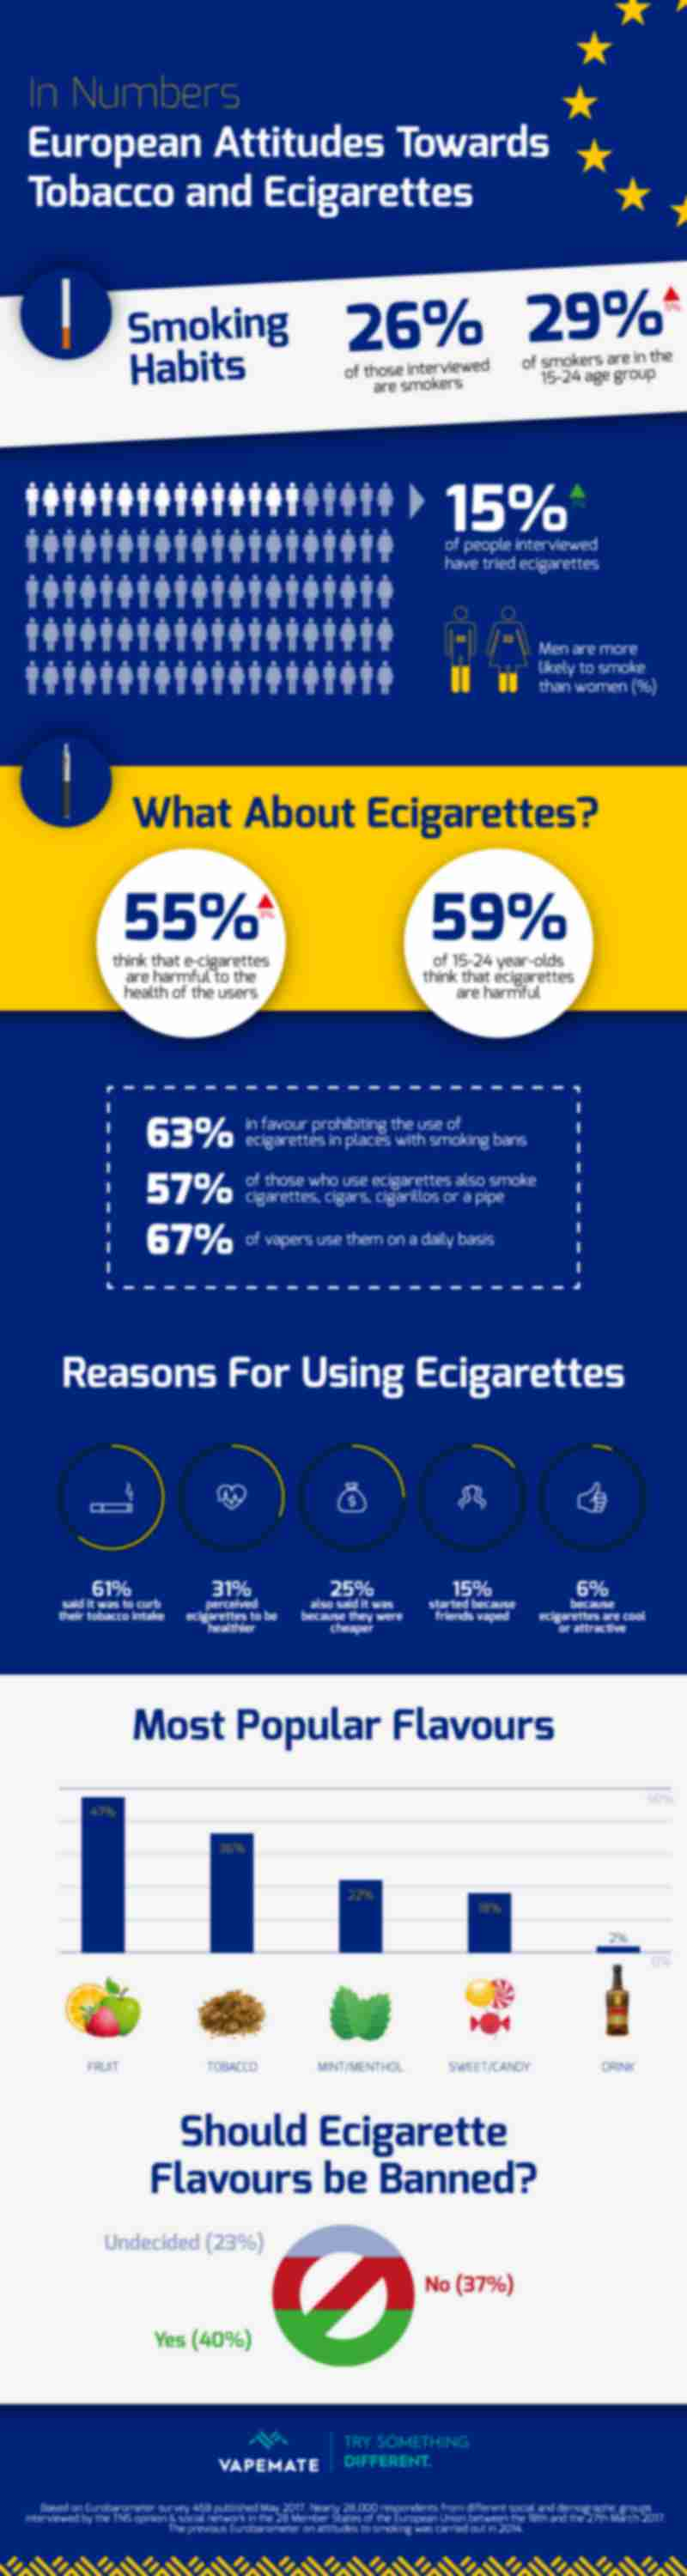 European attitudes to tobacco and ecigarettes in numbers